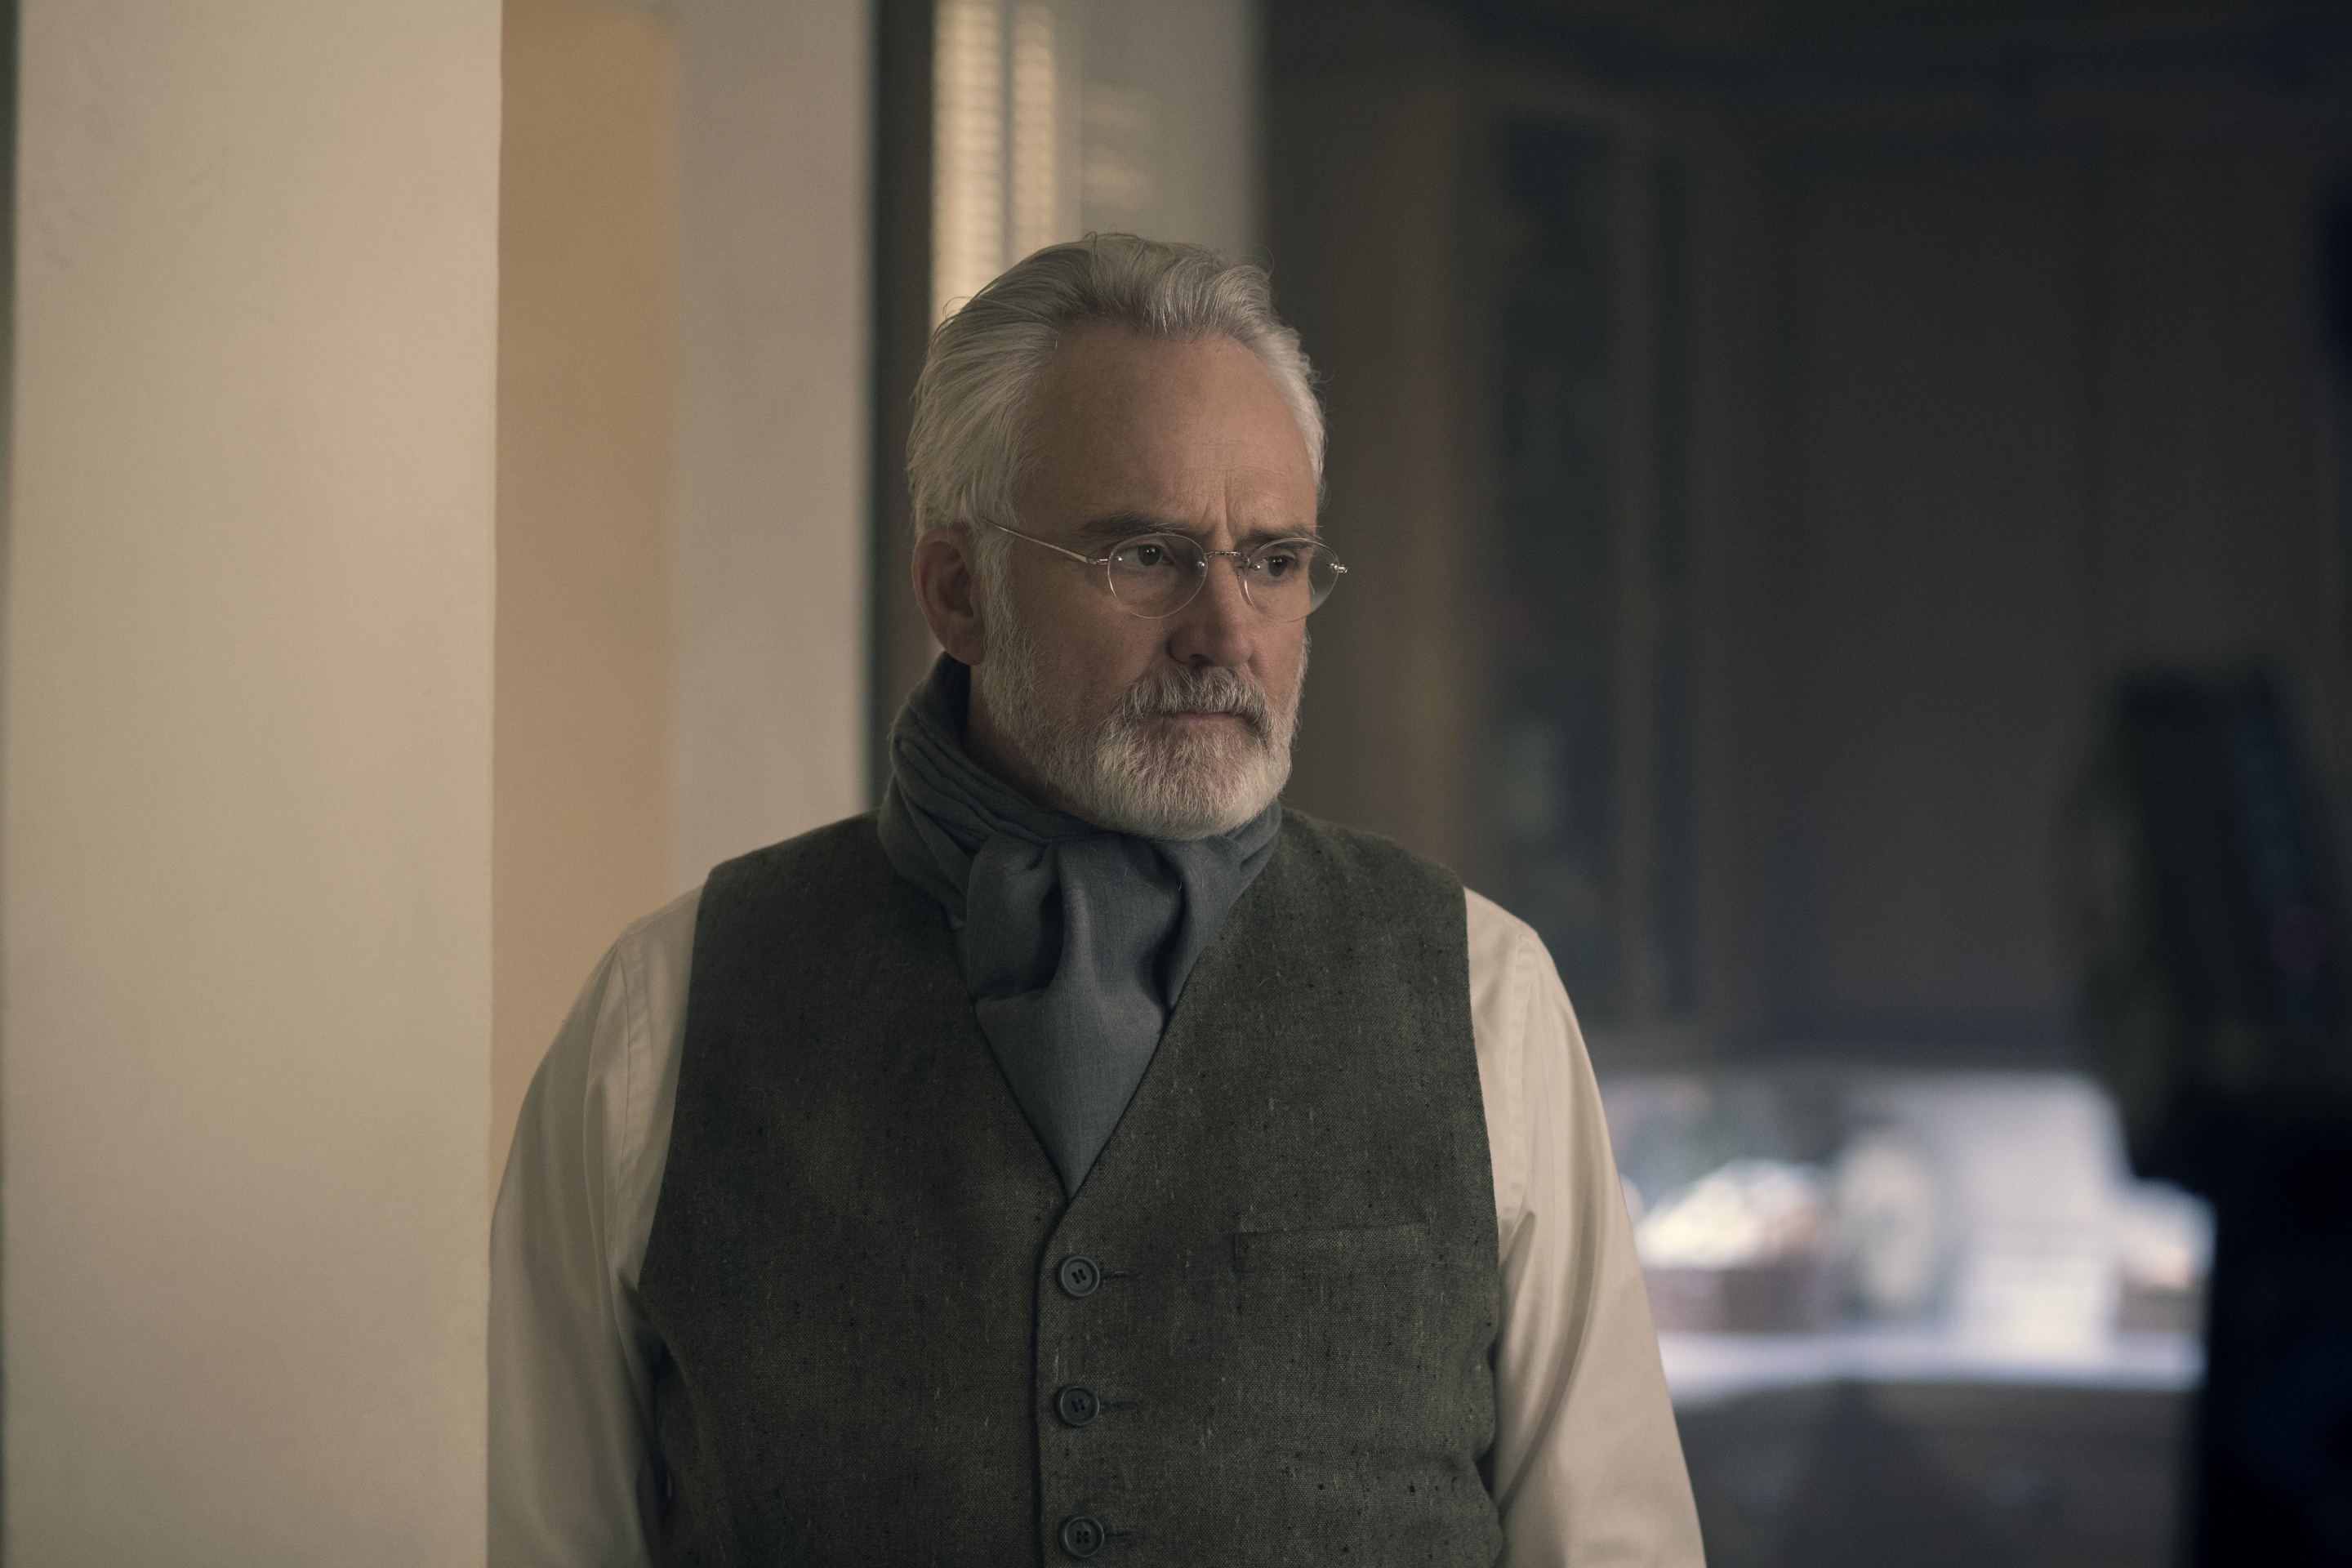 The Handmaid's Tale --  Household  - Episode 306 -- June accompanies the Waterfords to Washington D.C., where a powerful family offers a glimpse of the future of Gilead. June makes an important connection as she attempts to protect Nichole. Joseph (Bradley Whitford), shown.